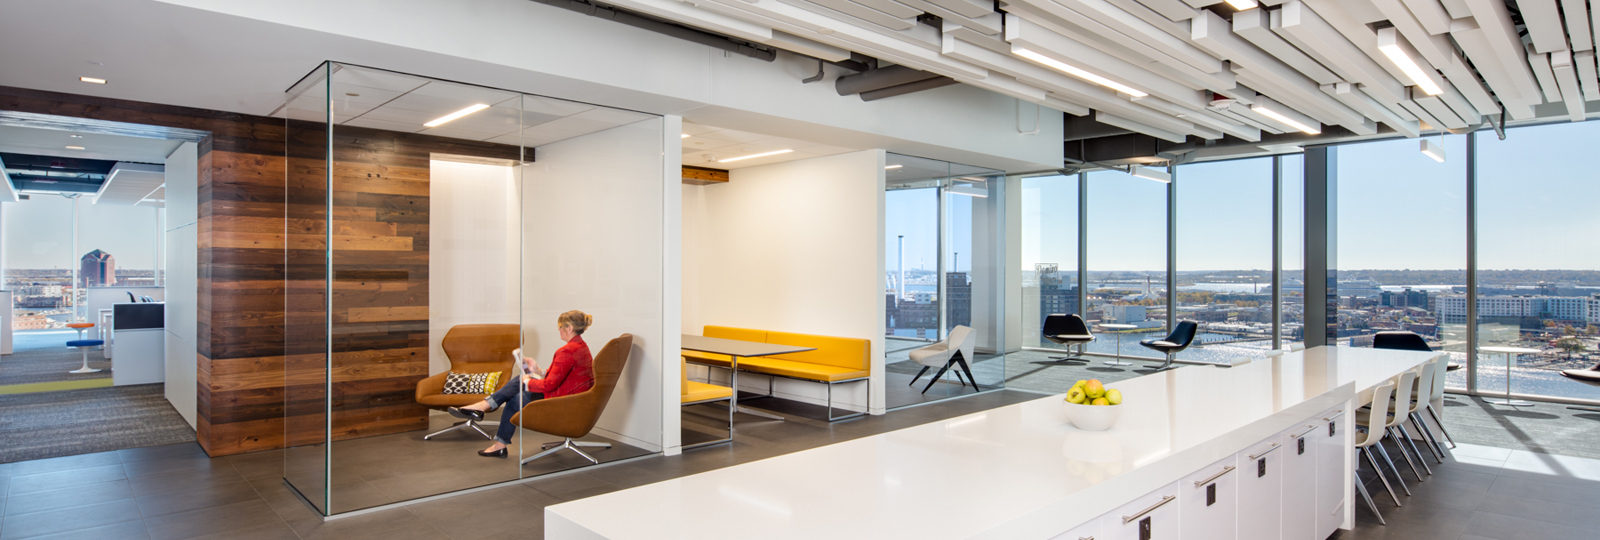 Gilmore Lighting Design creates LEED Platinum certification for Exelon's new headquarters